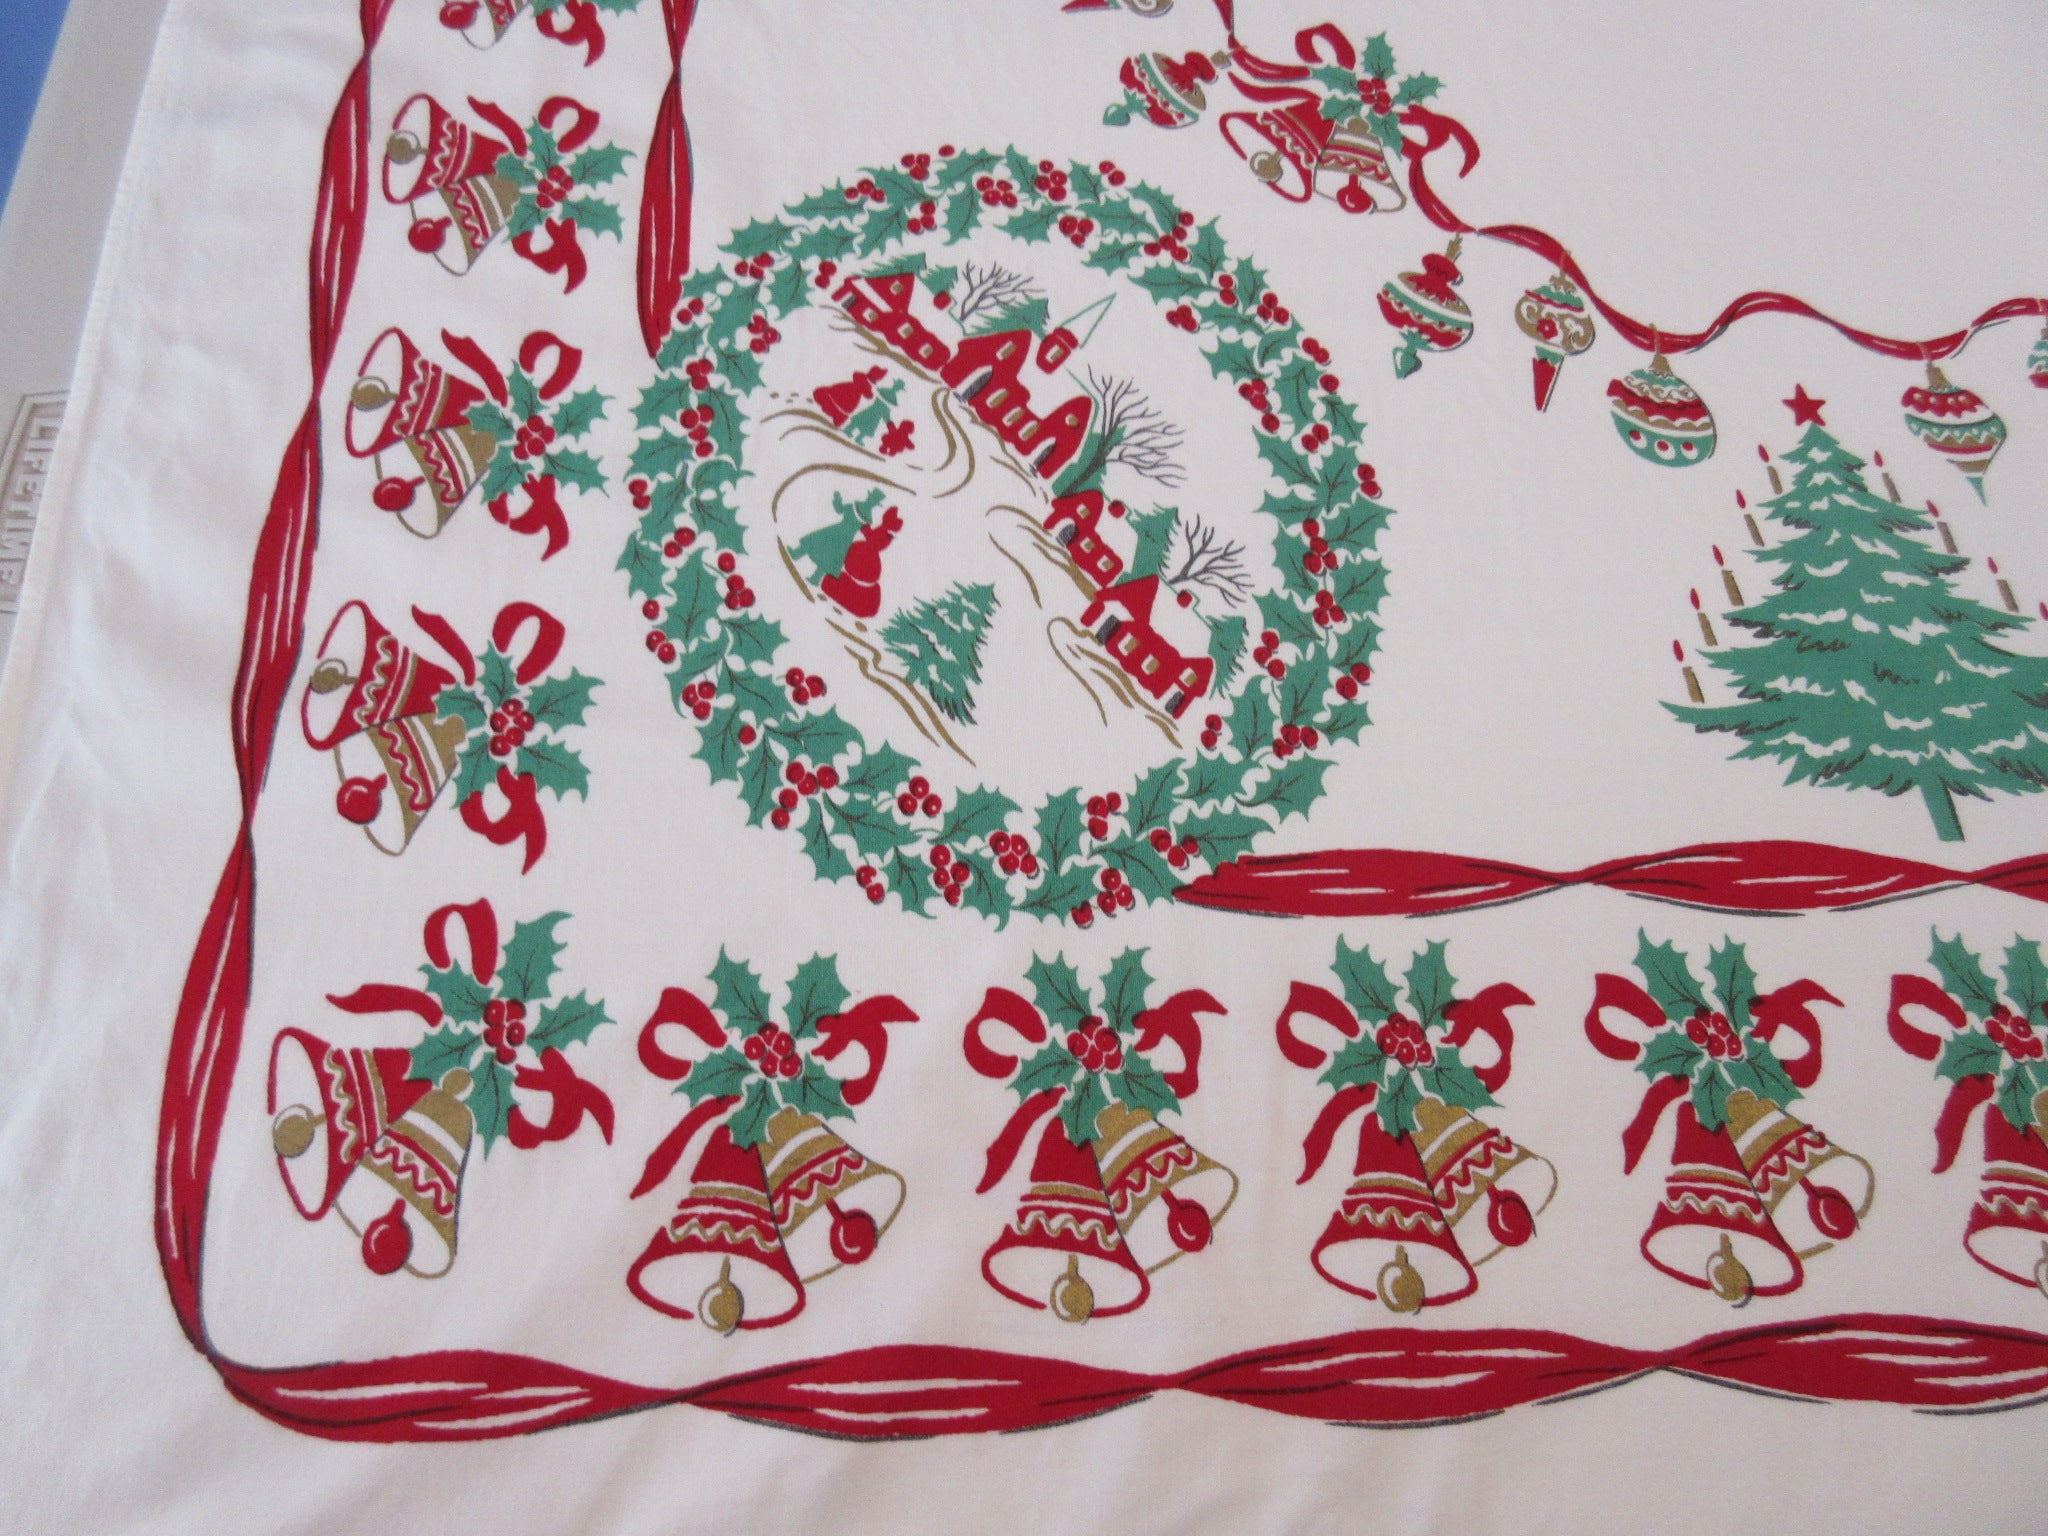 Red Green Wreaths and Trees Christmas Novelty Vintage Printed Tablecloth (58 X 53)